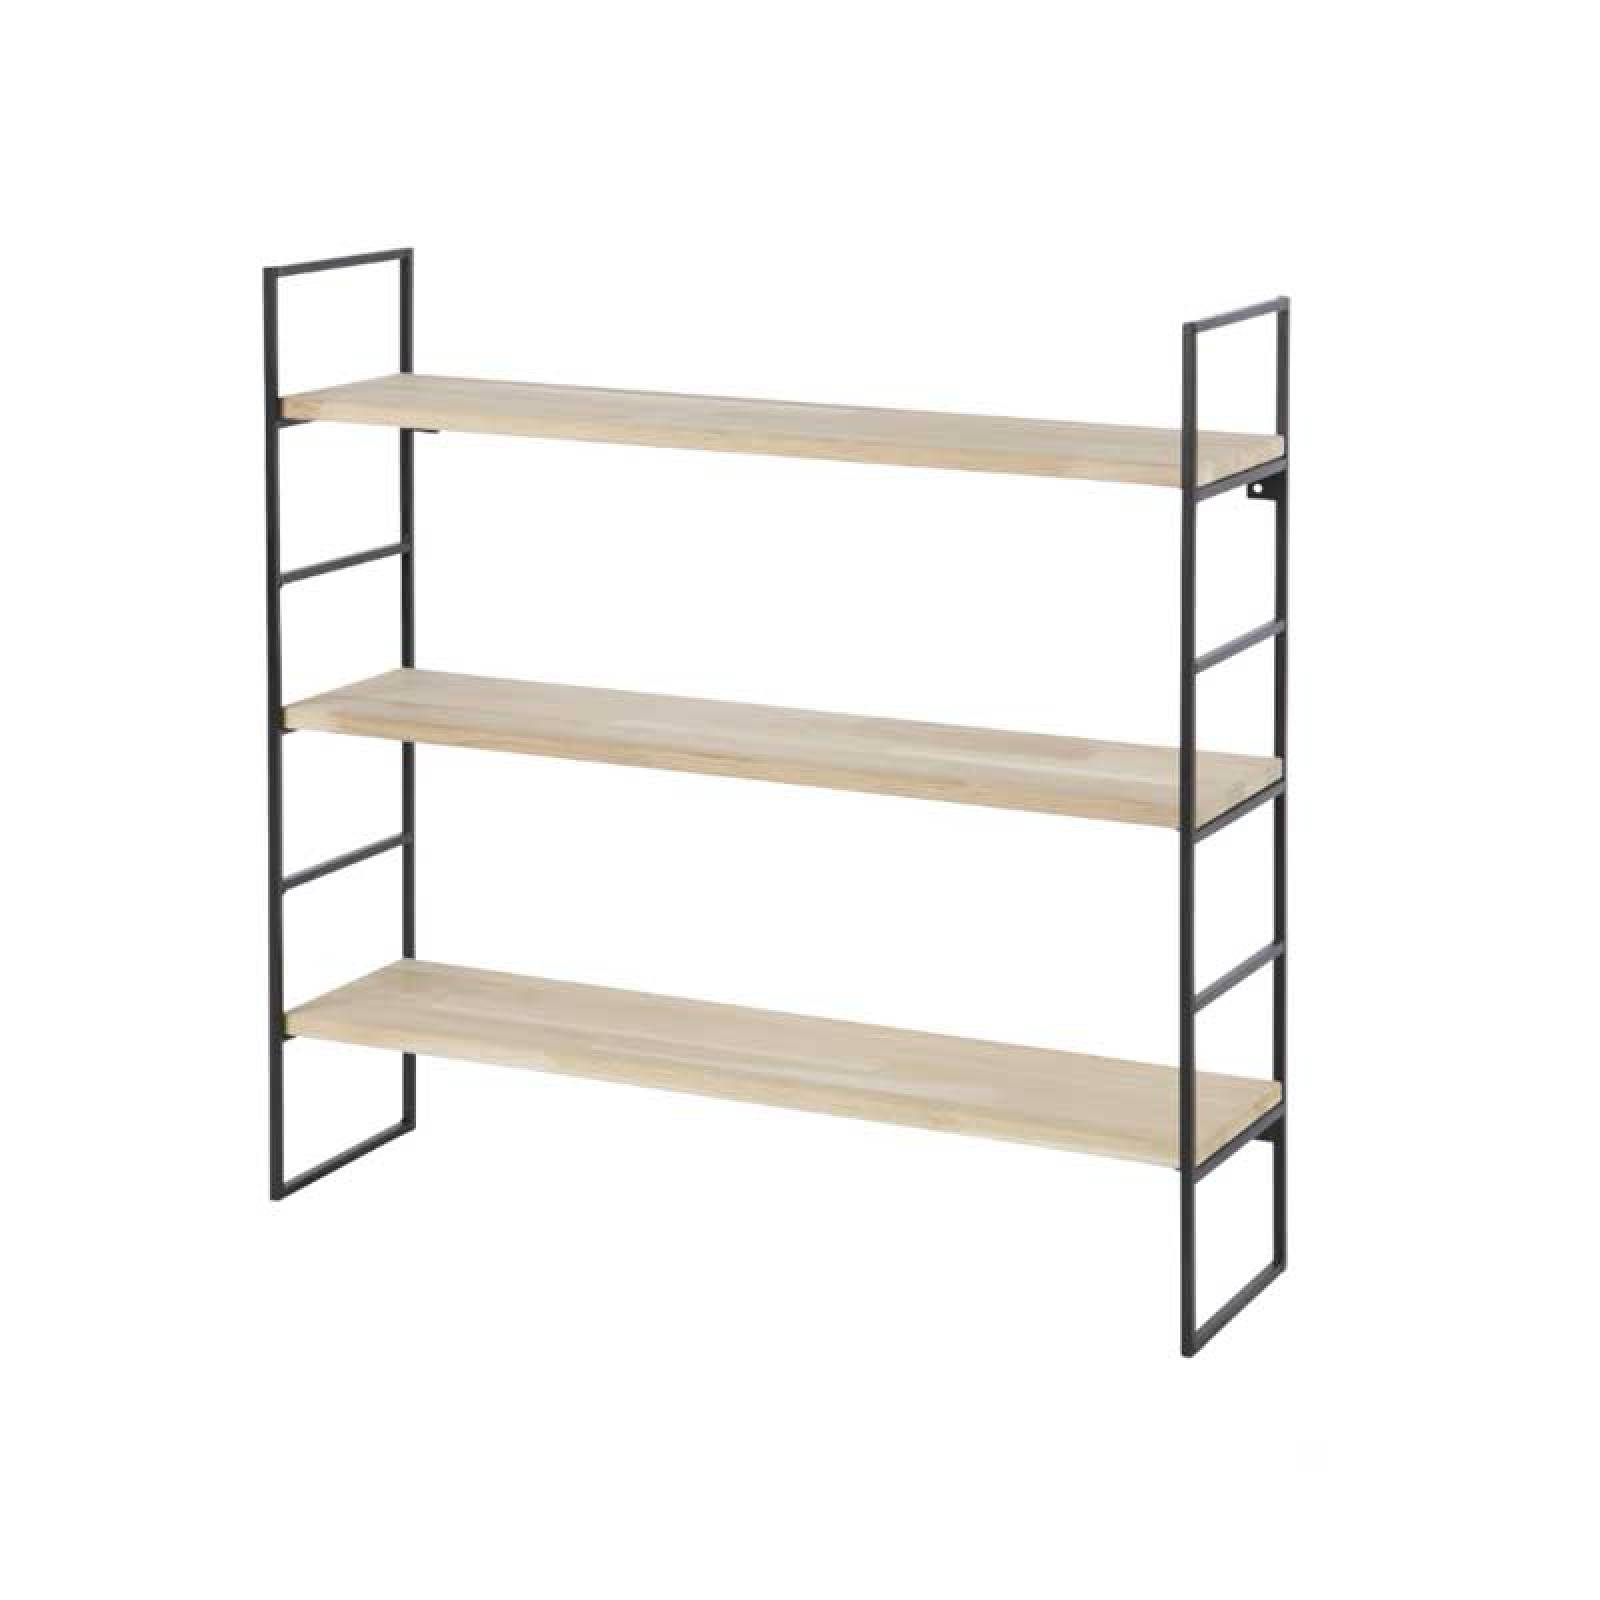 Meert Wall Shelf Black Metal Laddder Side thumbnails